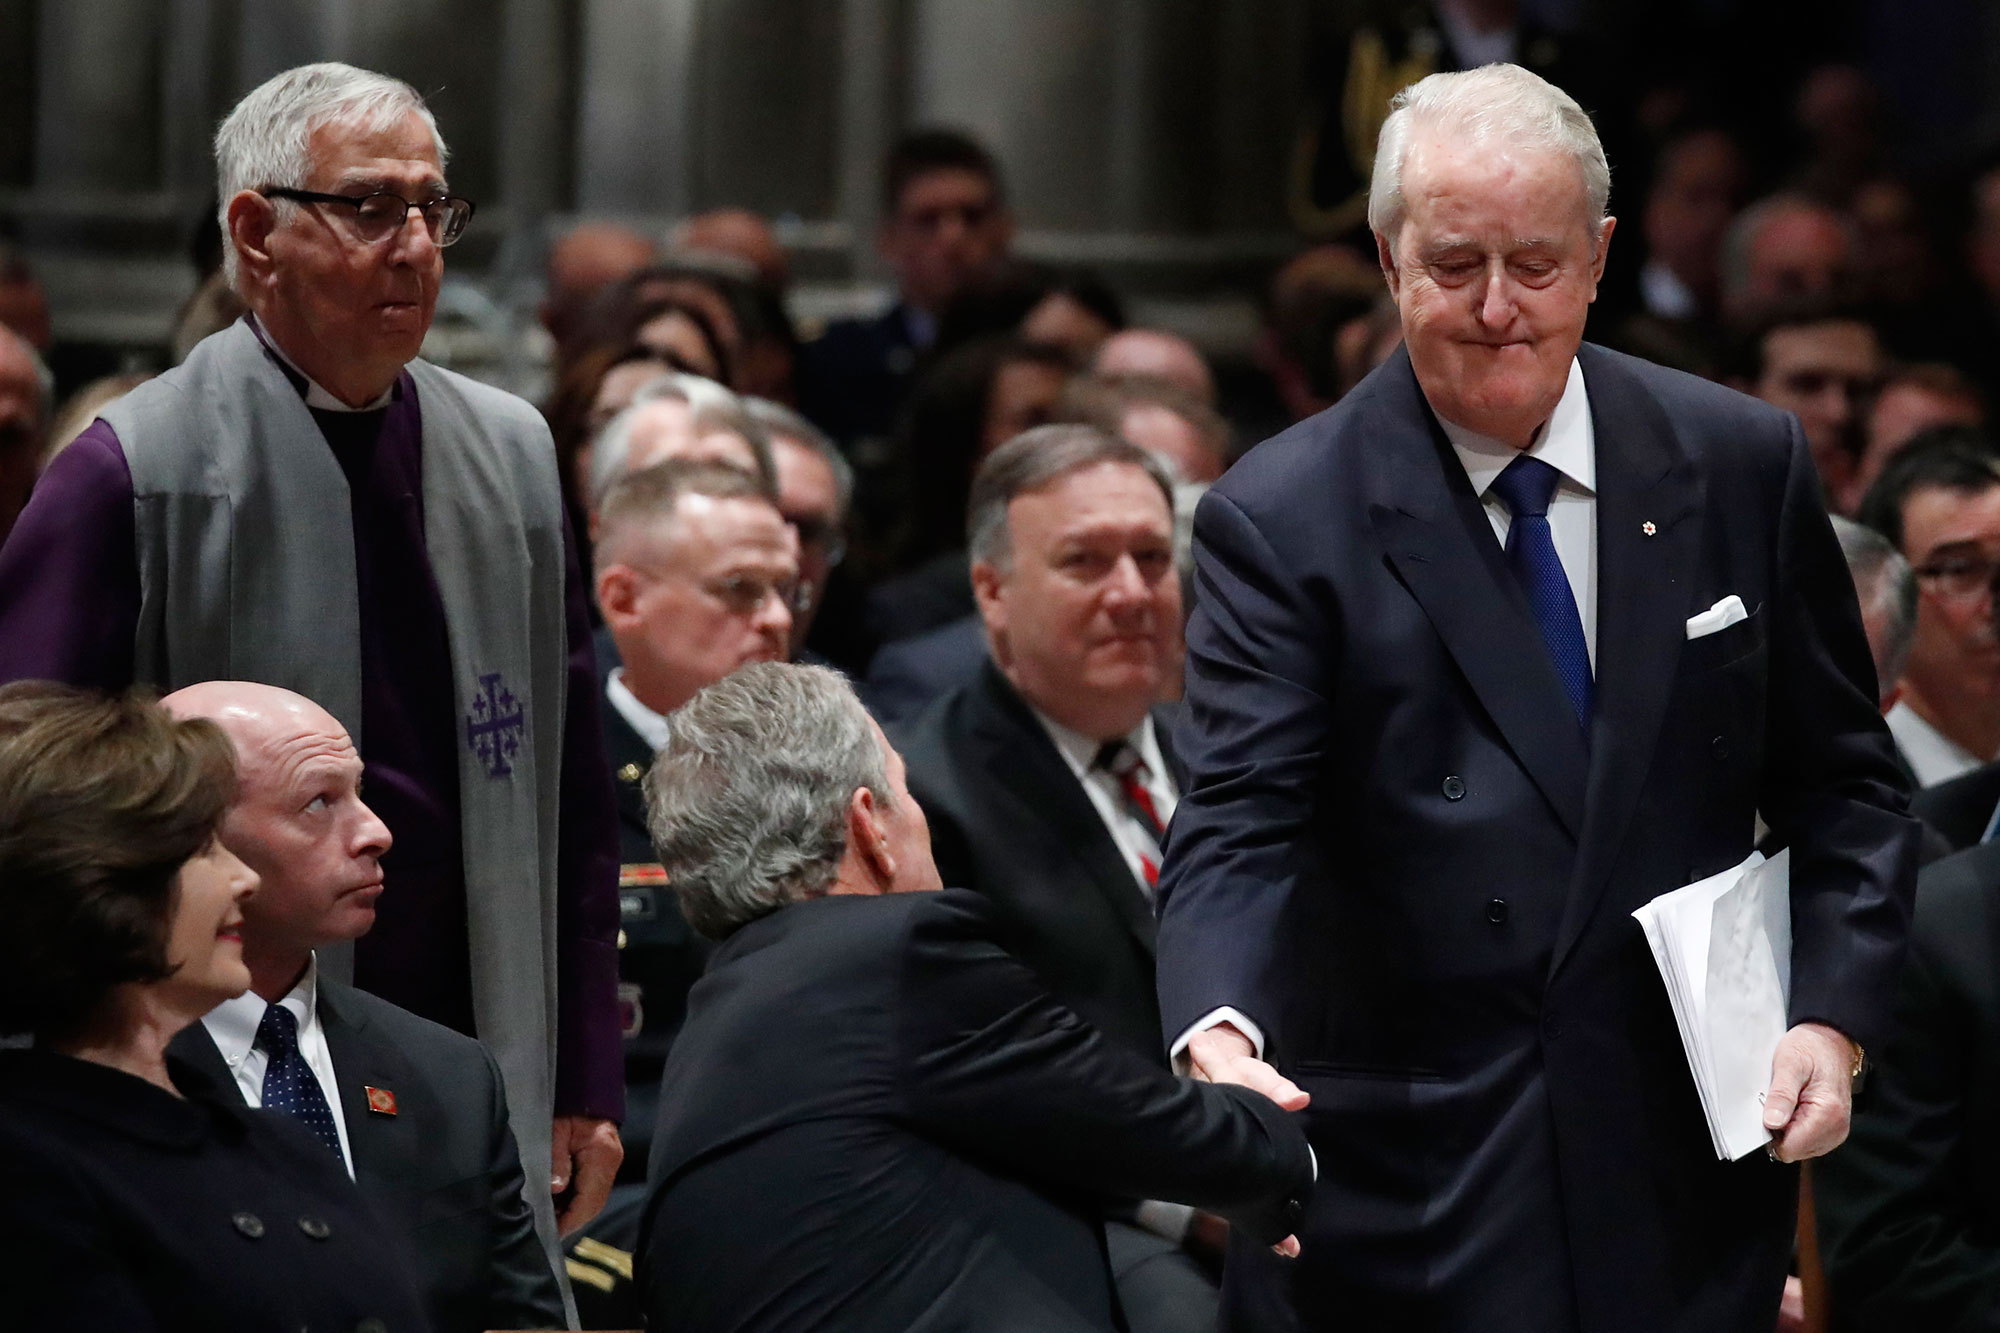 "<div class=""meta image-caption""><div class=""origin-logo origin-image none""><span>none</span></div><span class=""caption-text"">Former Canadian Prime Minister Brian Mulroney shakes hands with former President George W. Bush. (Alex Brandon - Pool/Getty Images)</span></div>"